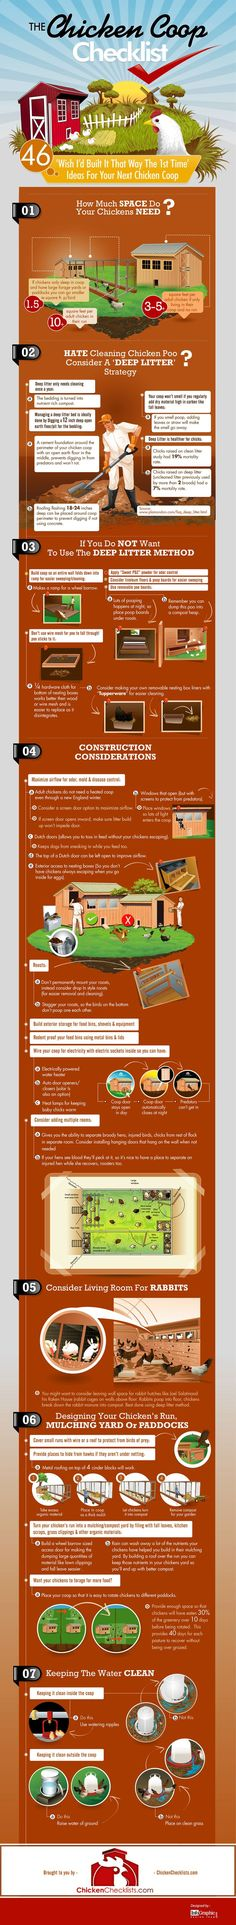 Urban Chickens Network blog: Infographic time: the chicken coop checklist :)